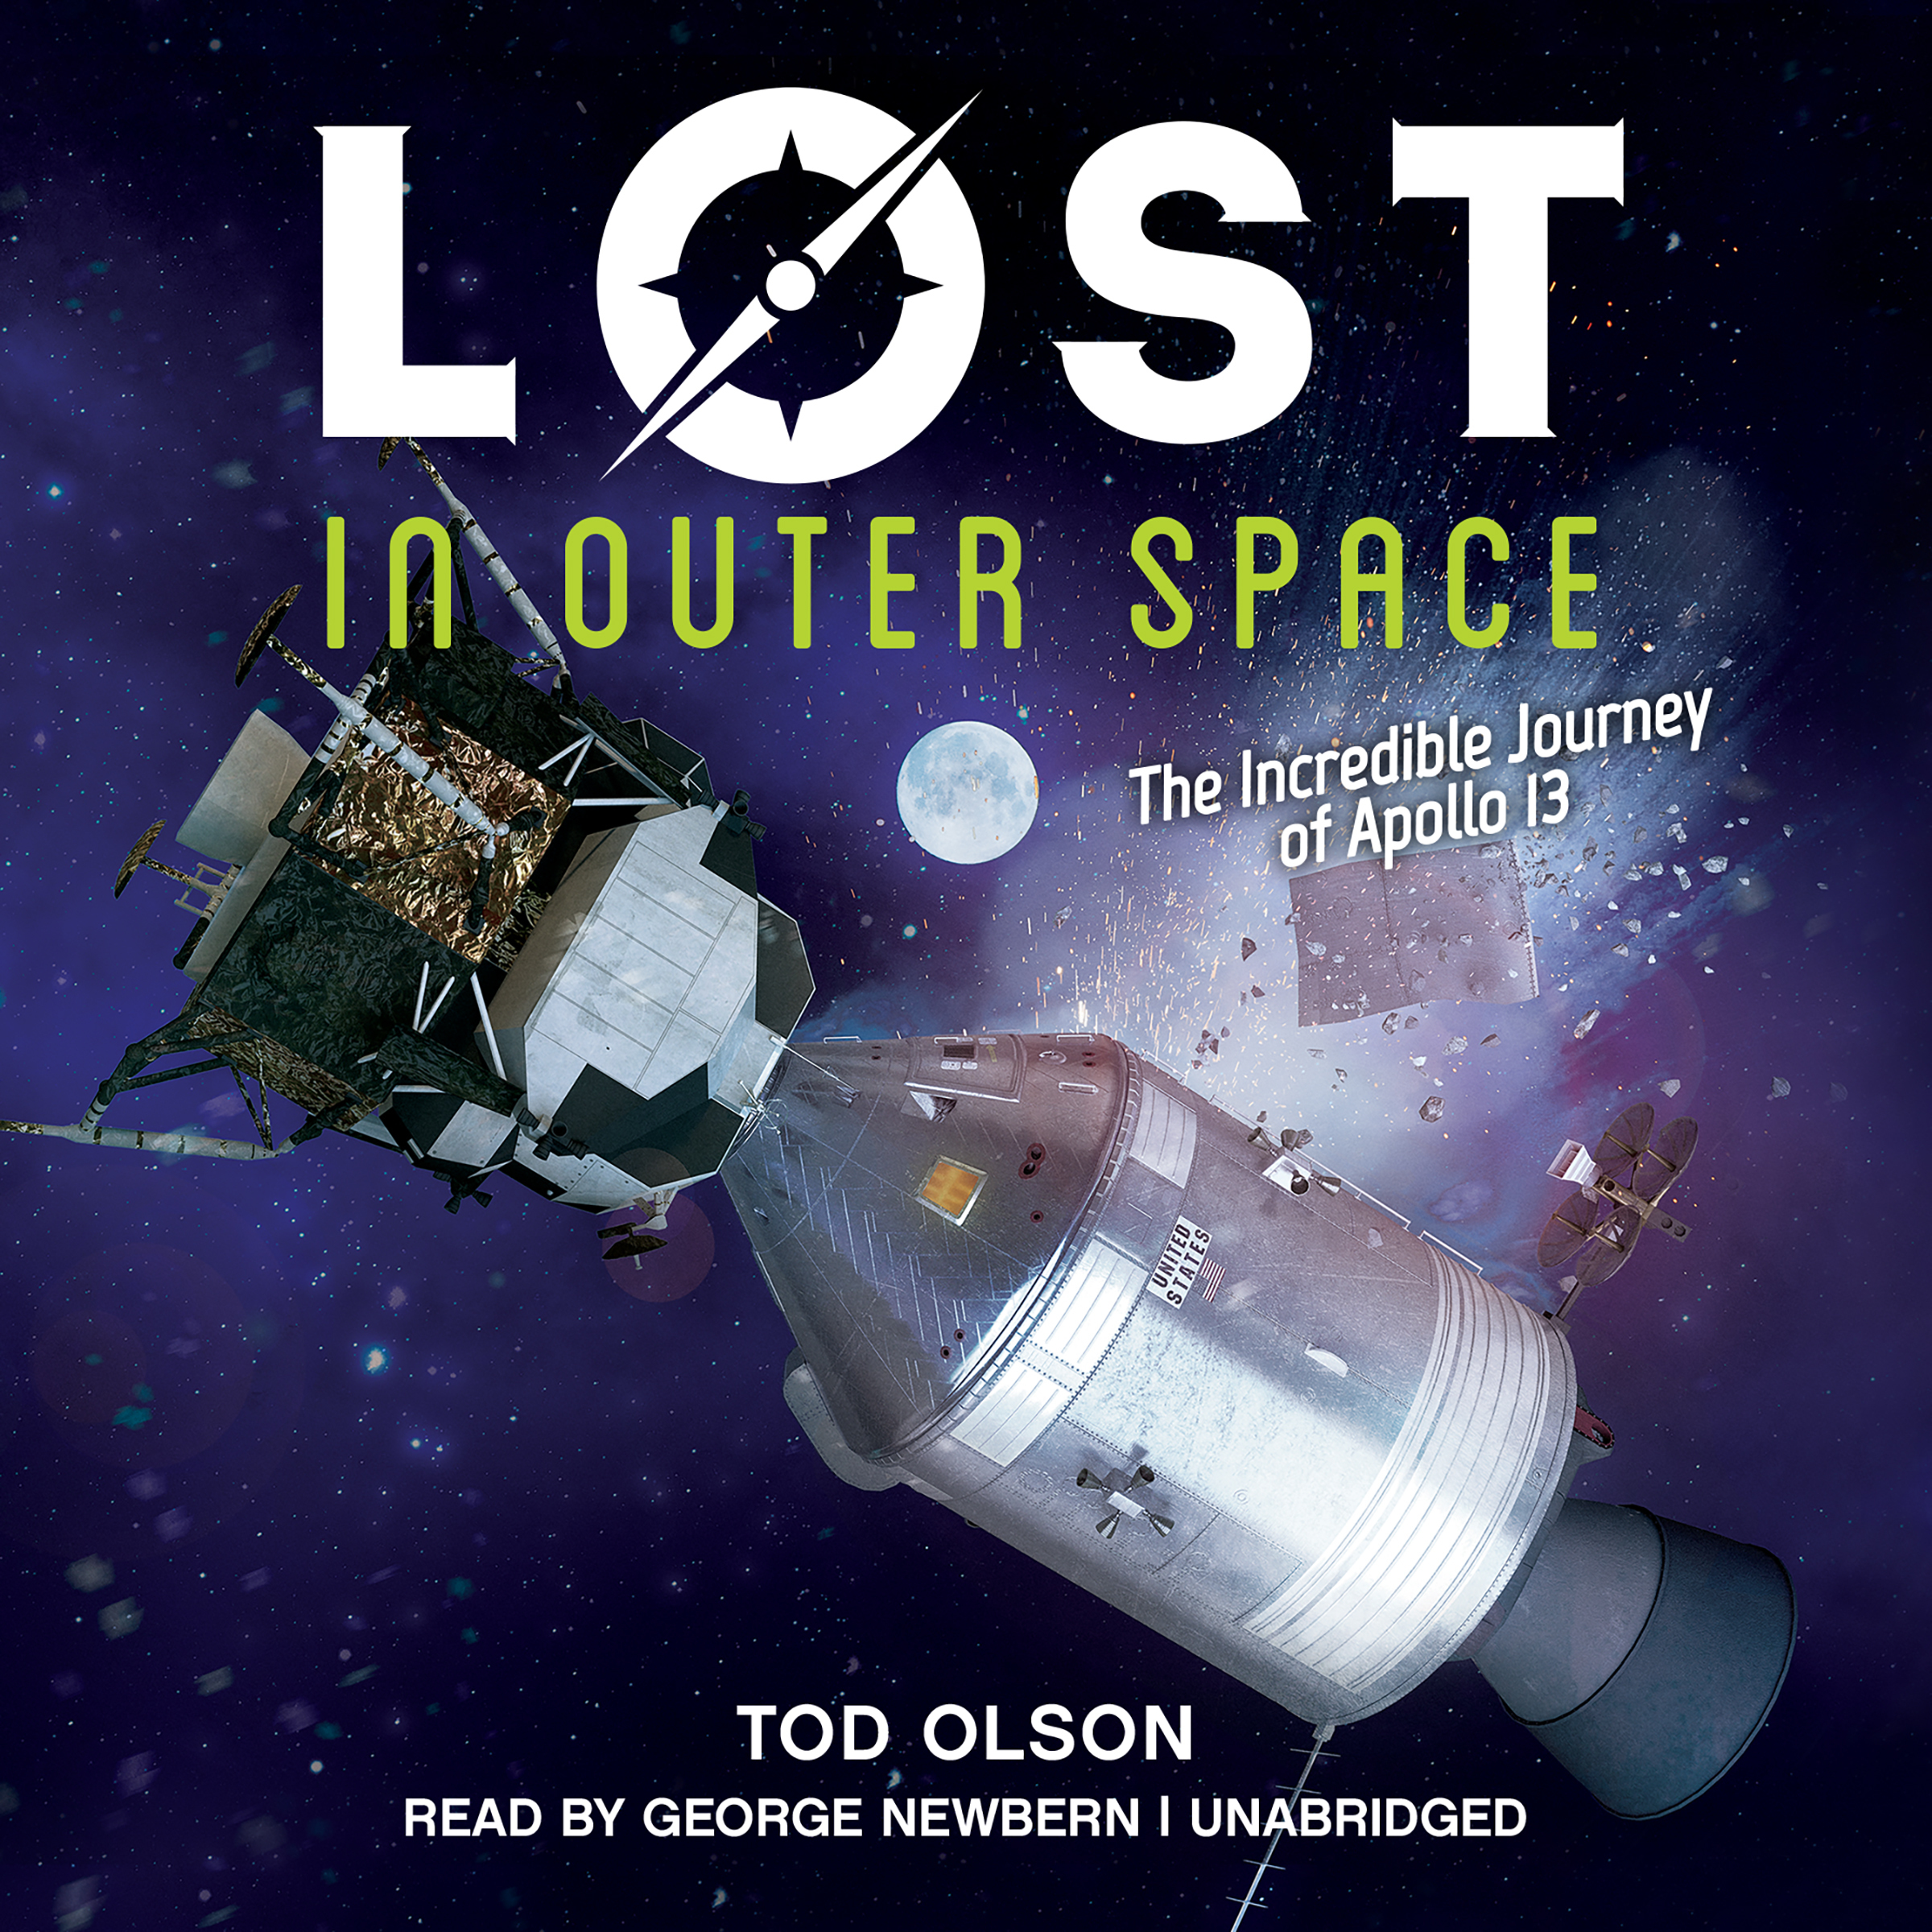 Apollo 13 Quotes Best download lost in outer space audiobooktod olson for just $5.95